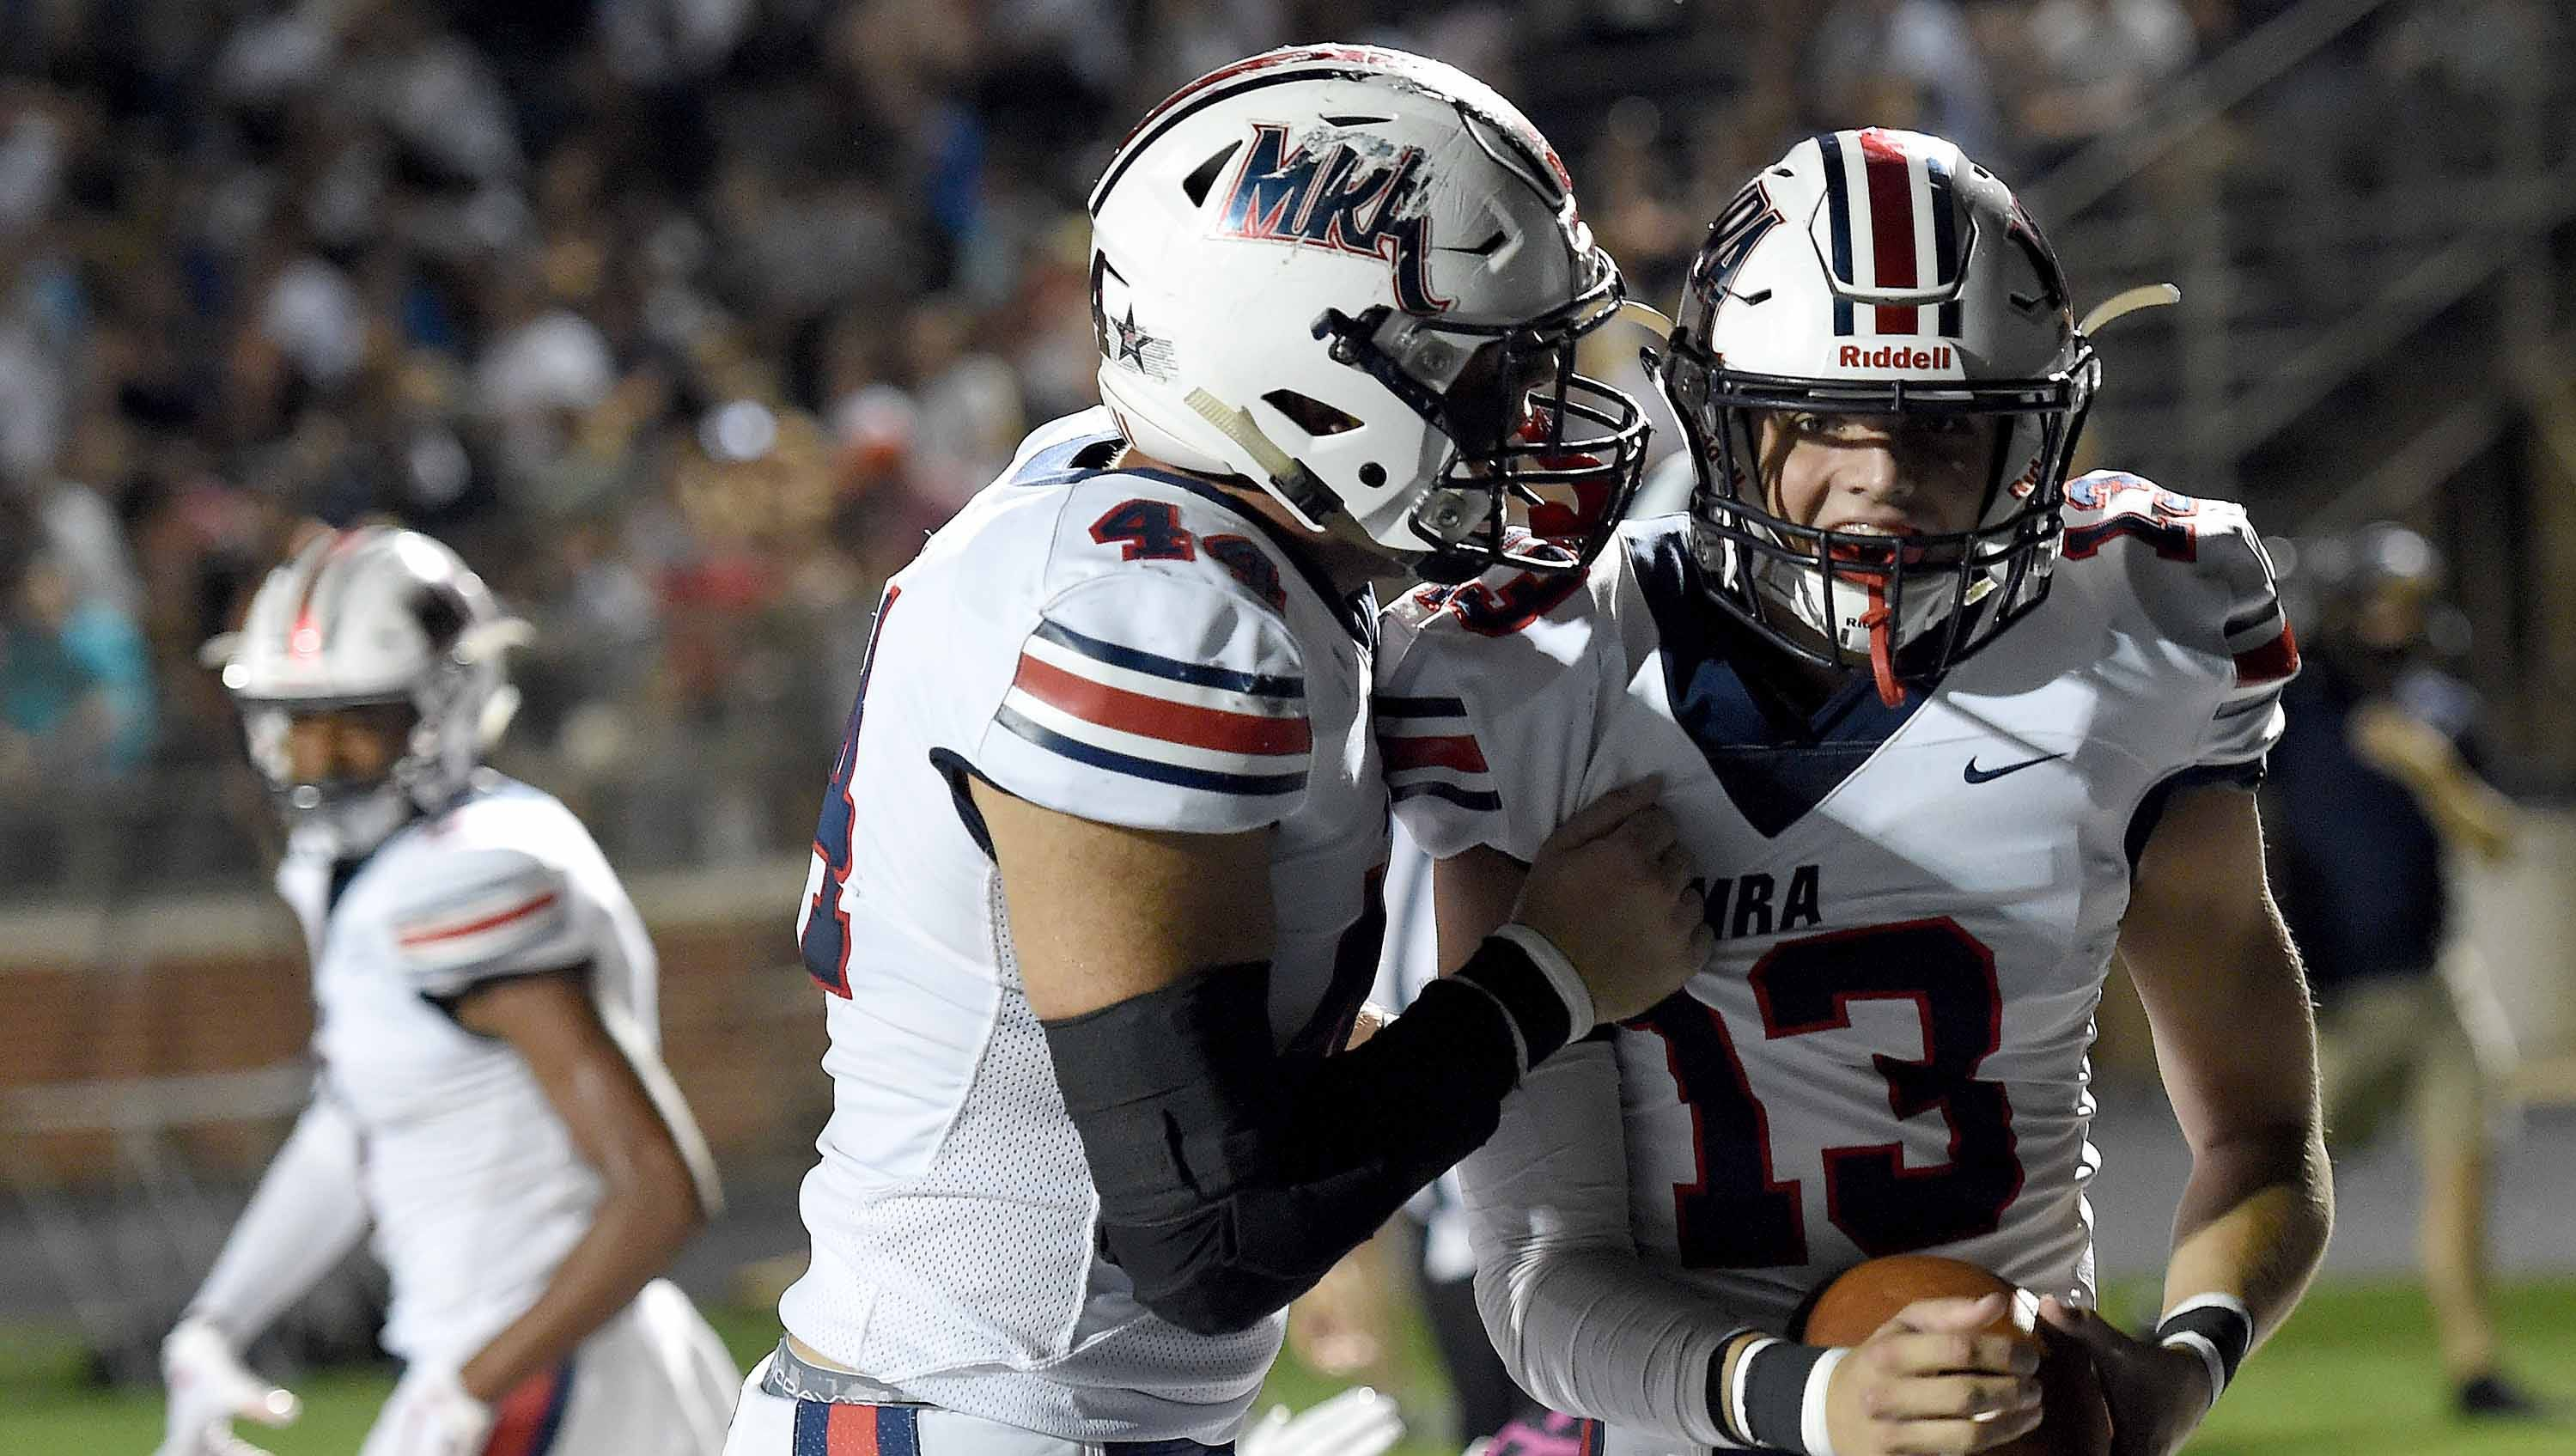 How a different mentality sparked Madison-Ridgeland Academy's undefeated season